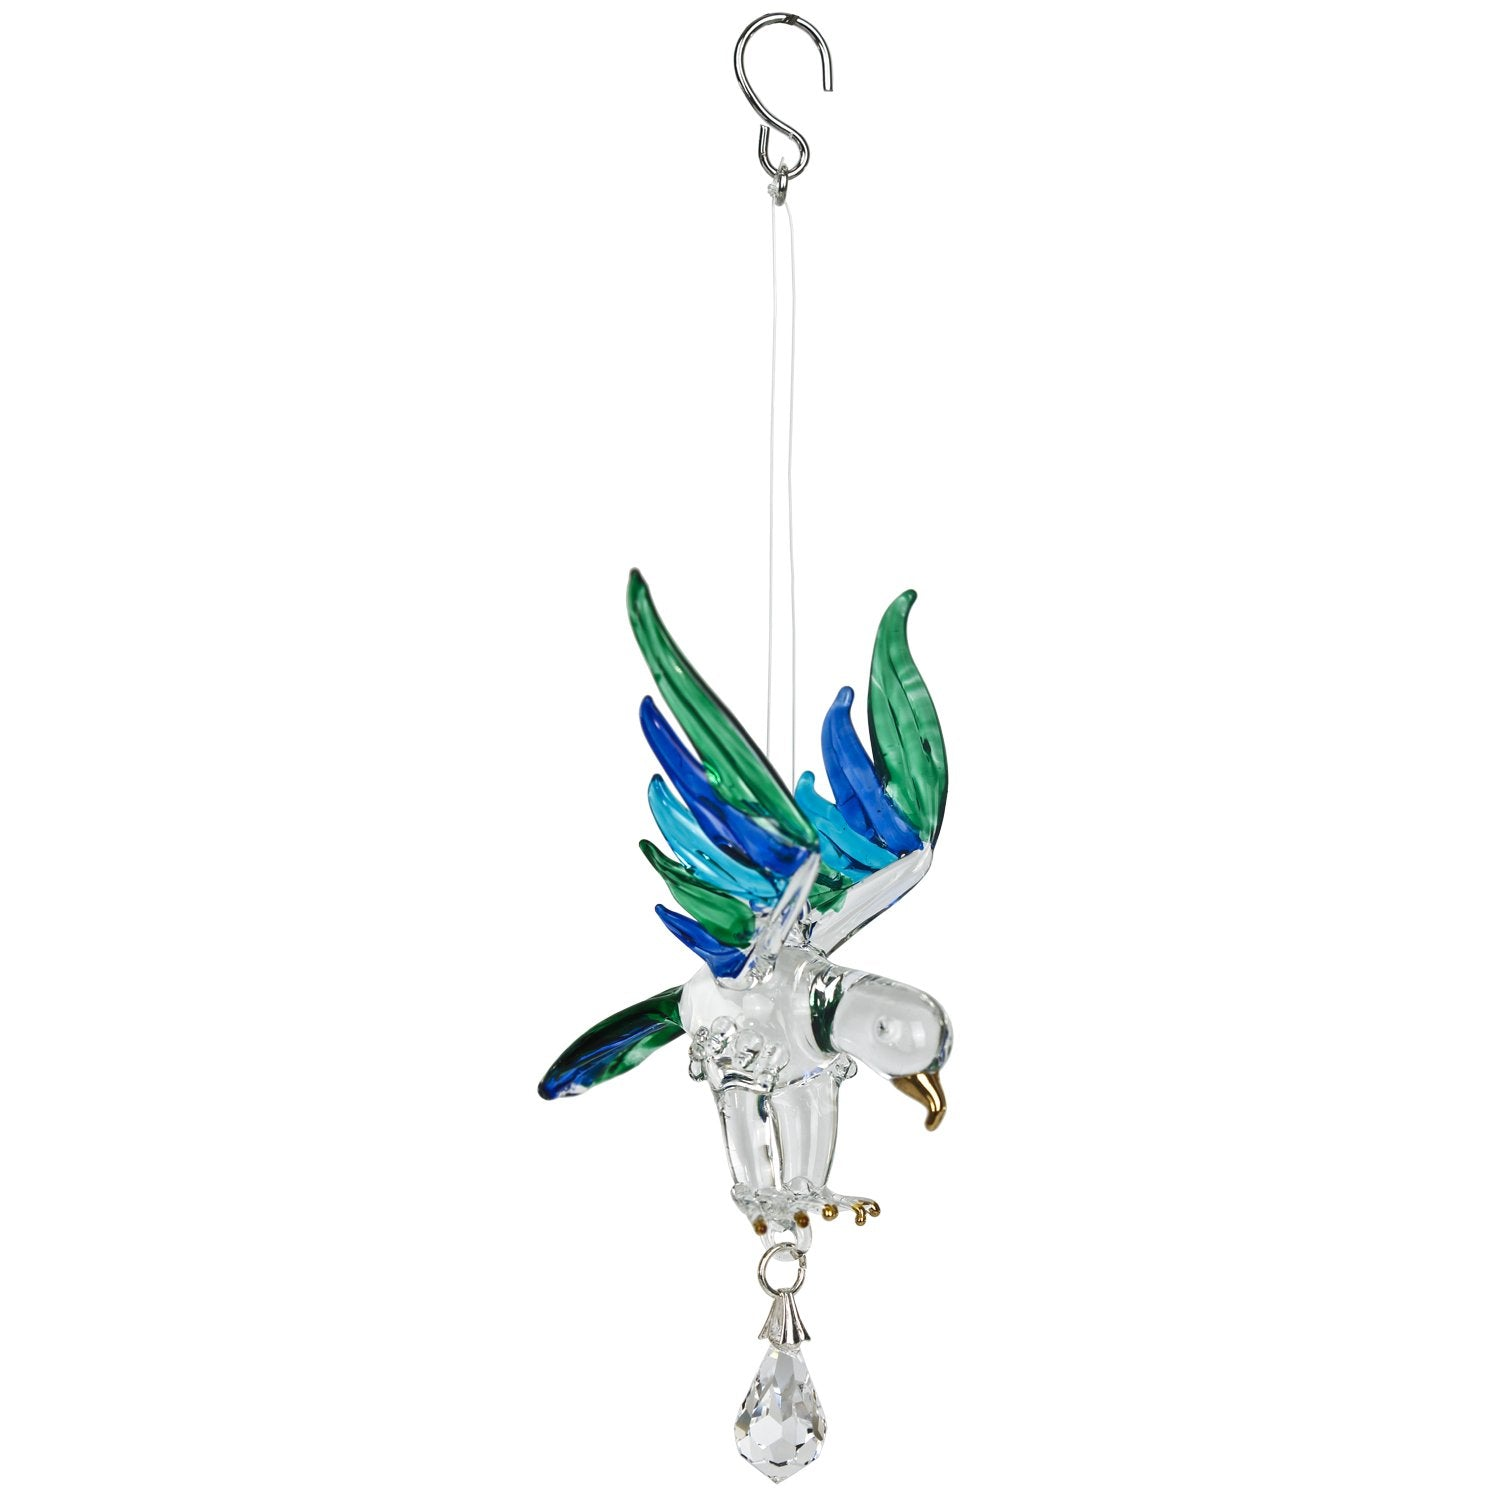 Fantasy Glass Suncatcher - Eagle, Peacock full product image